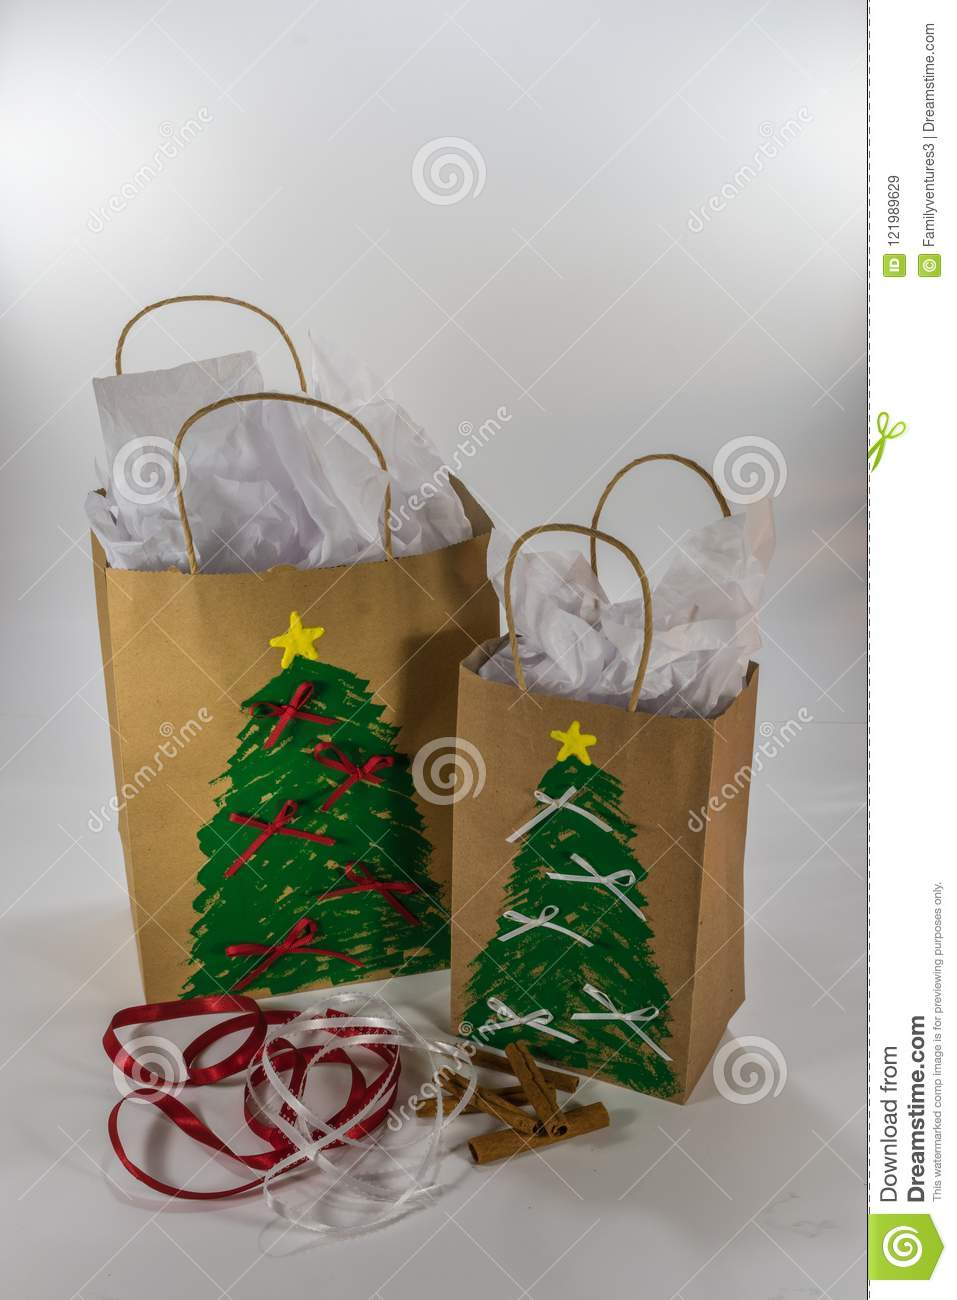 Christmas gift bags ready for giving : christmas gift bag ideas - medton.org